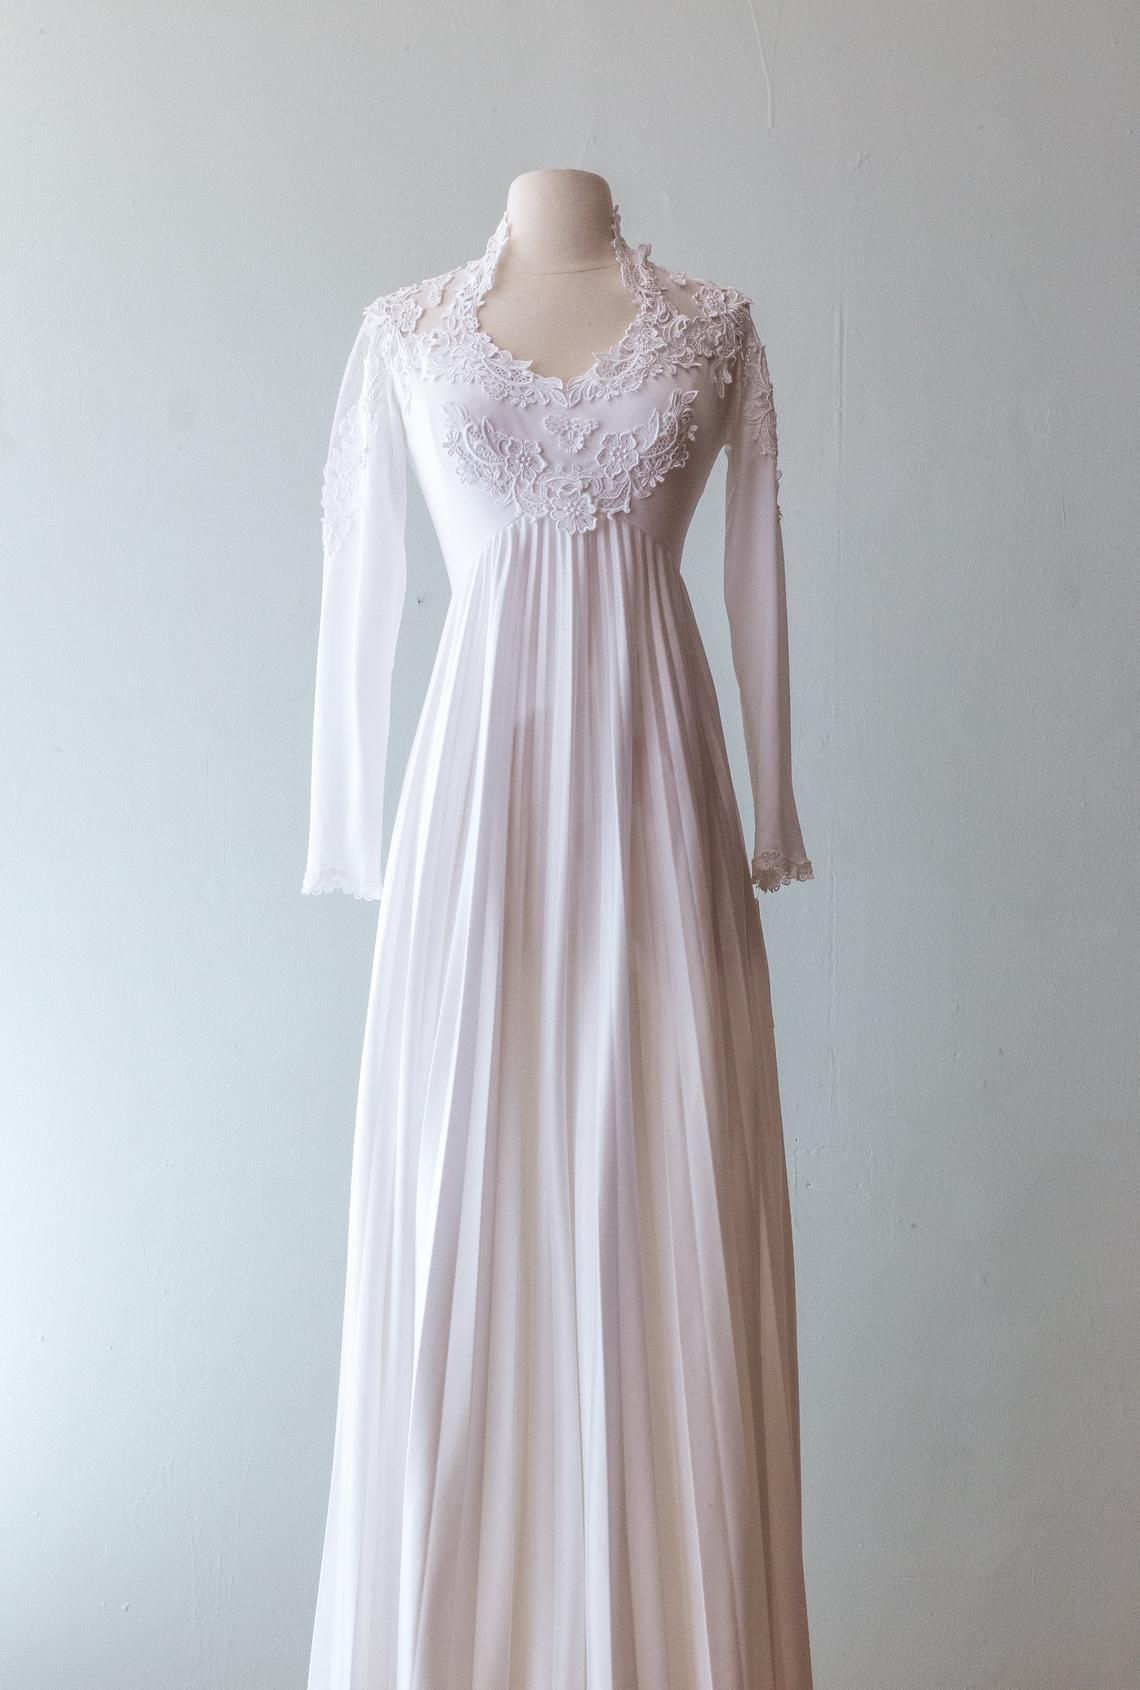 image 0 weddingdresses1970s 1970s wedding dress